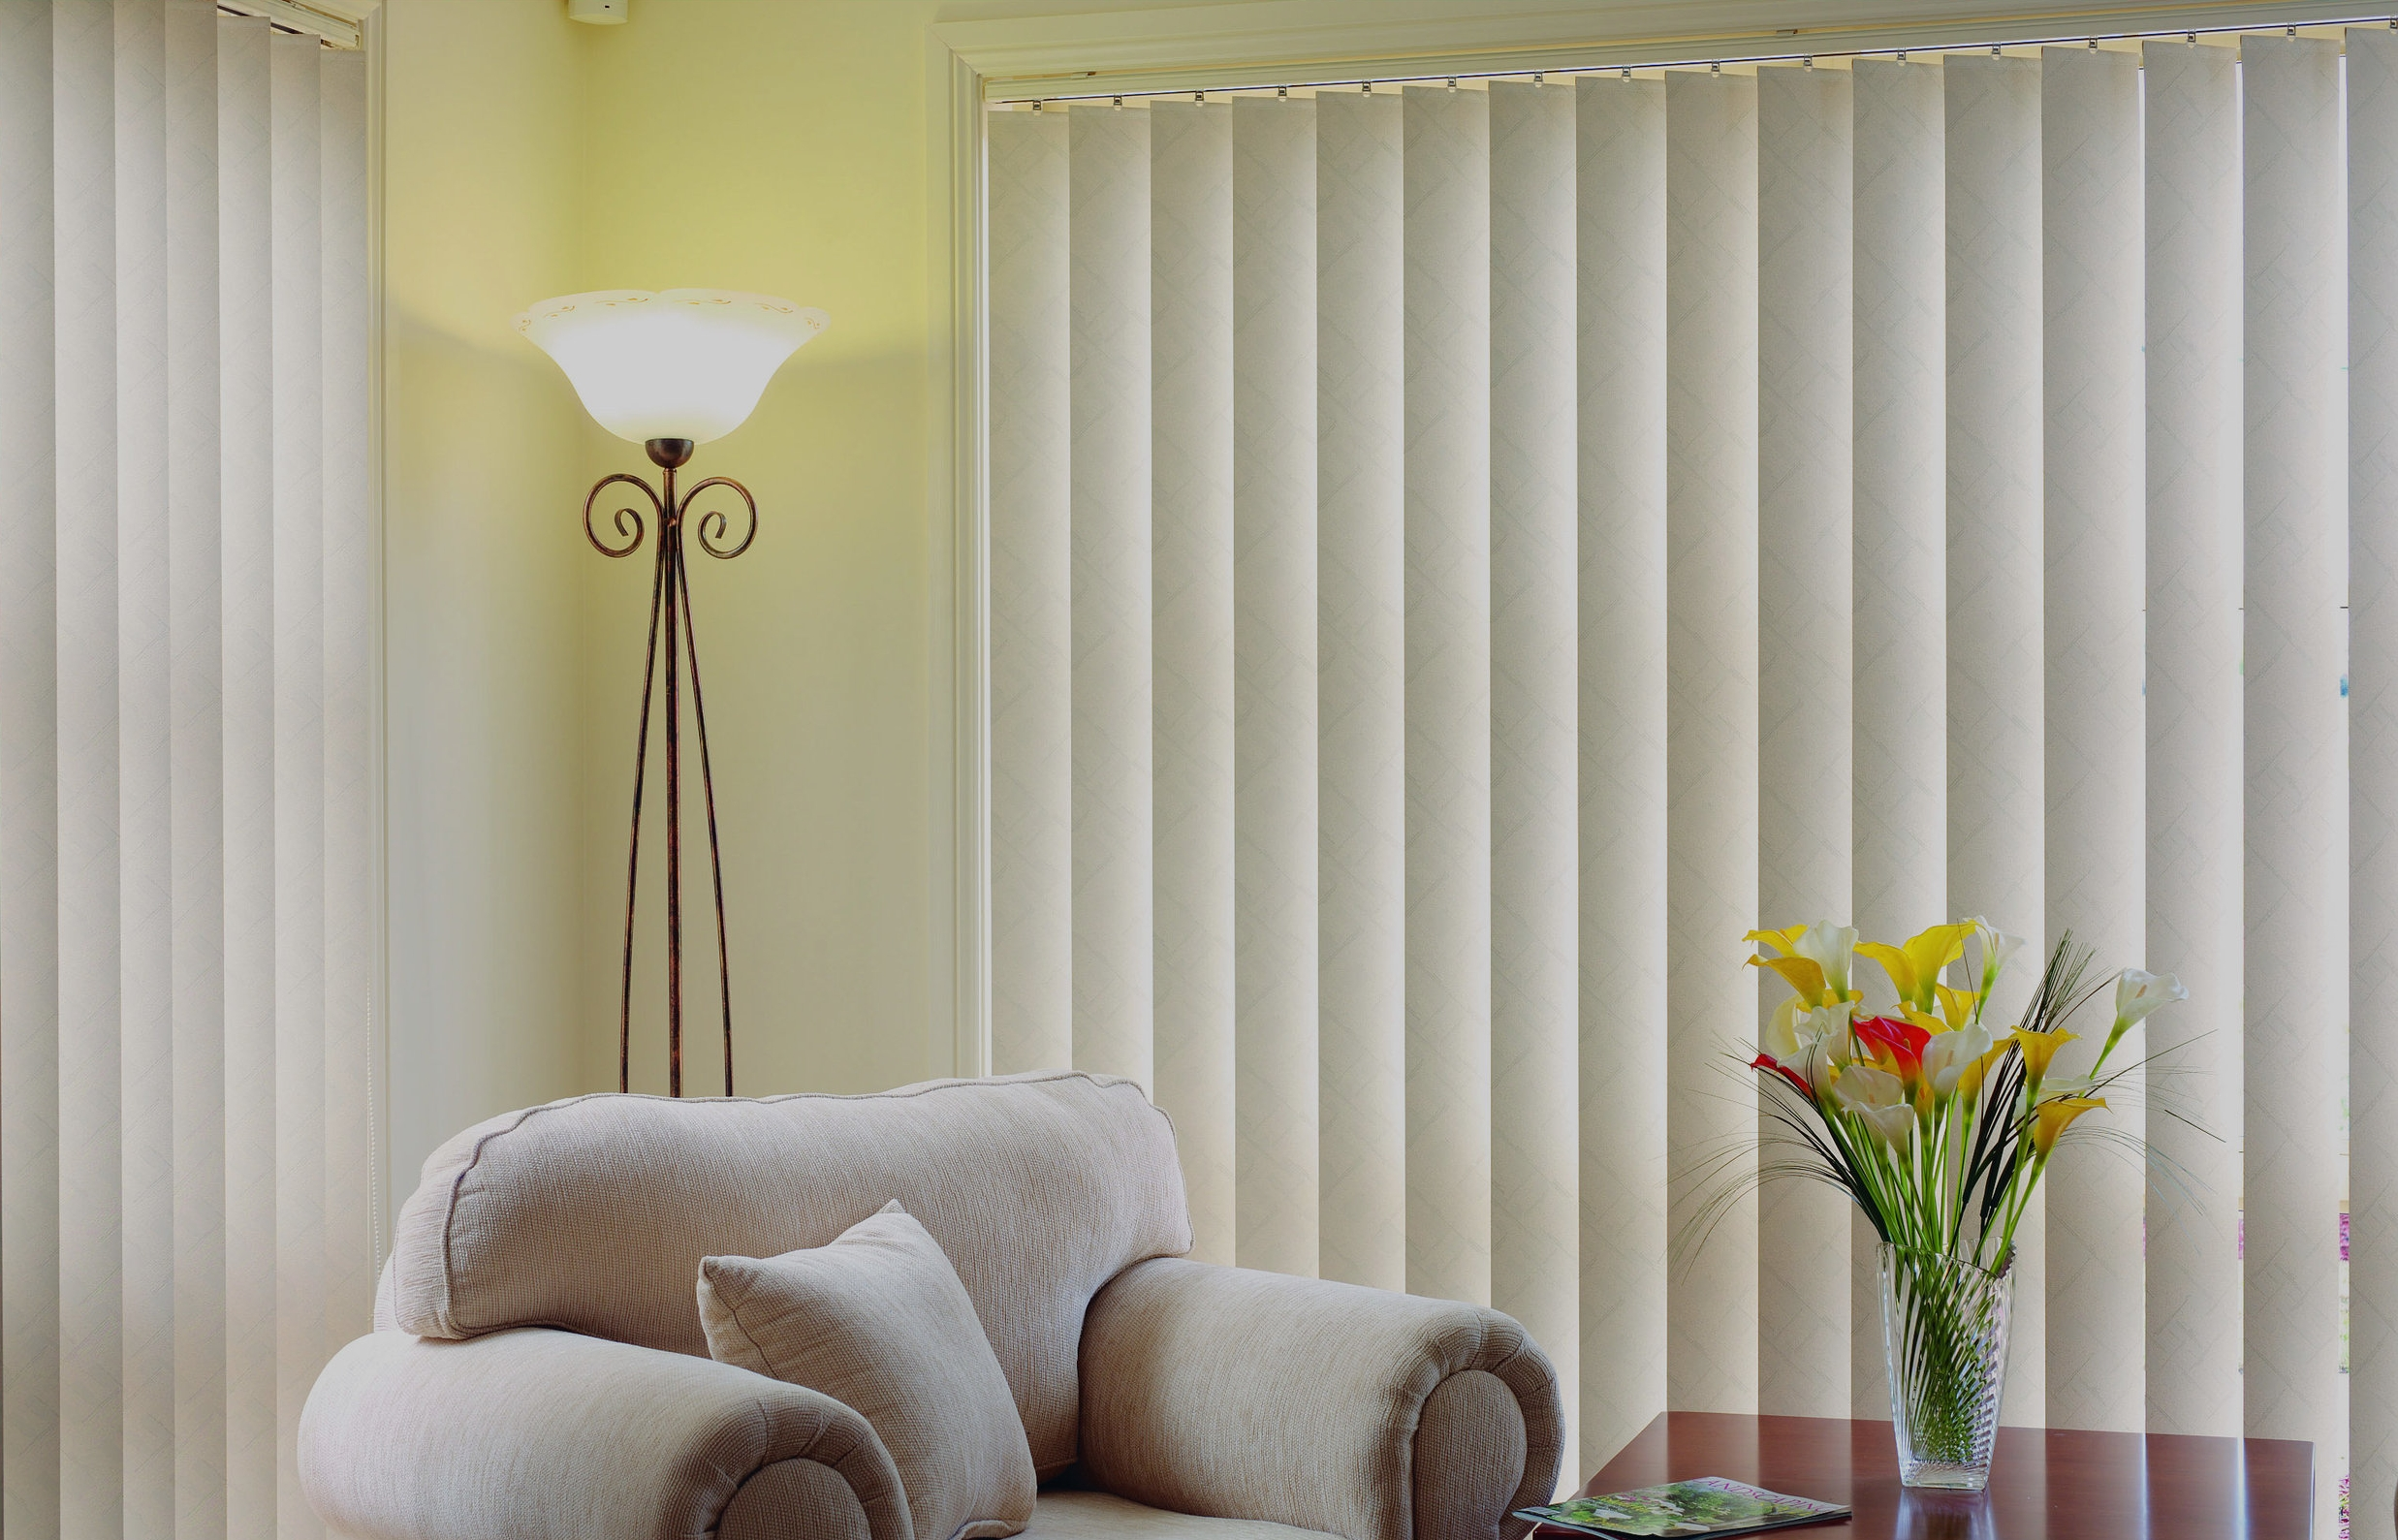 automated-vertical-blinds-diy-best-of-looking-to-buy-electric-vertical-blinds-in-sydney-of-automated-vertical-blinds-diy.jpg